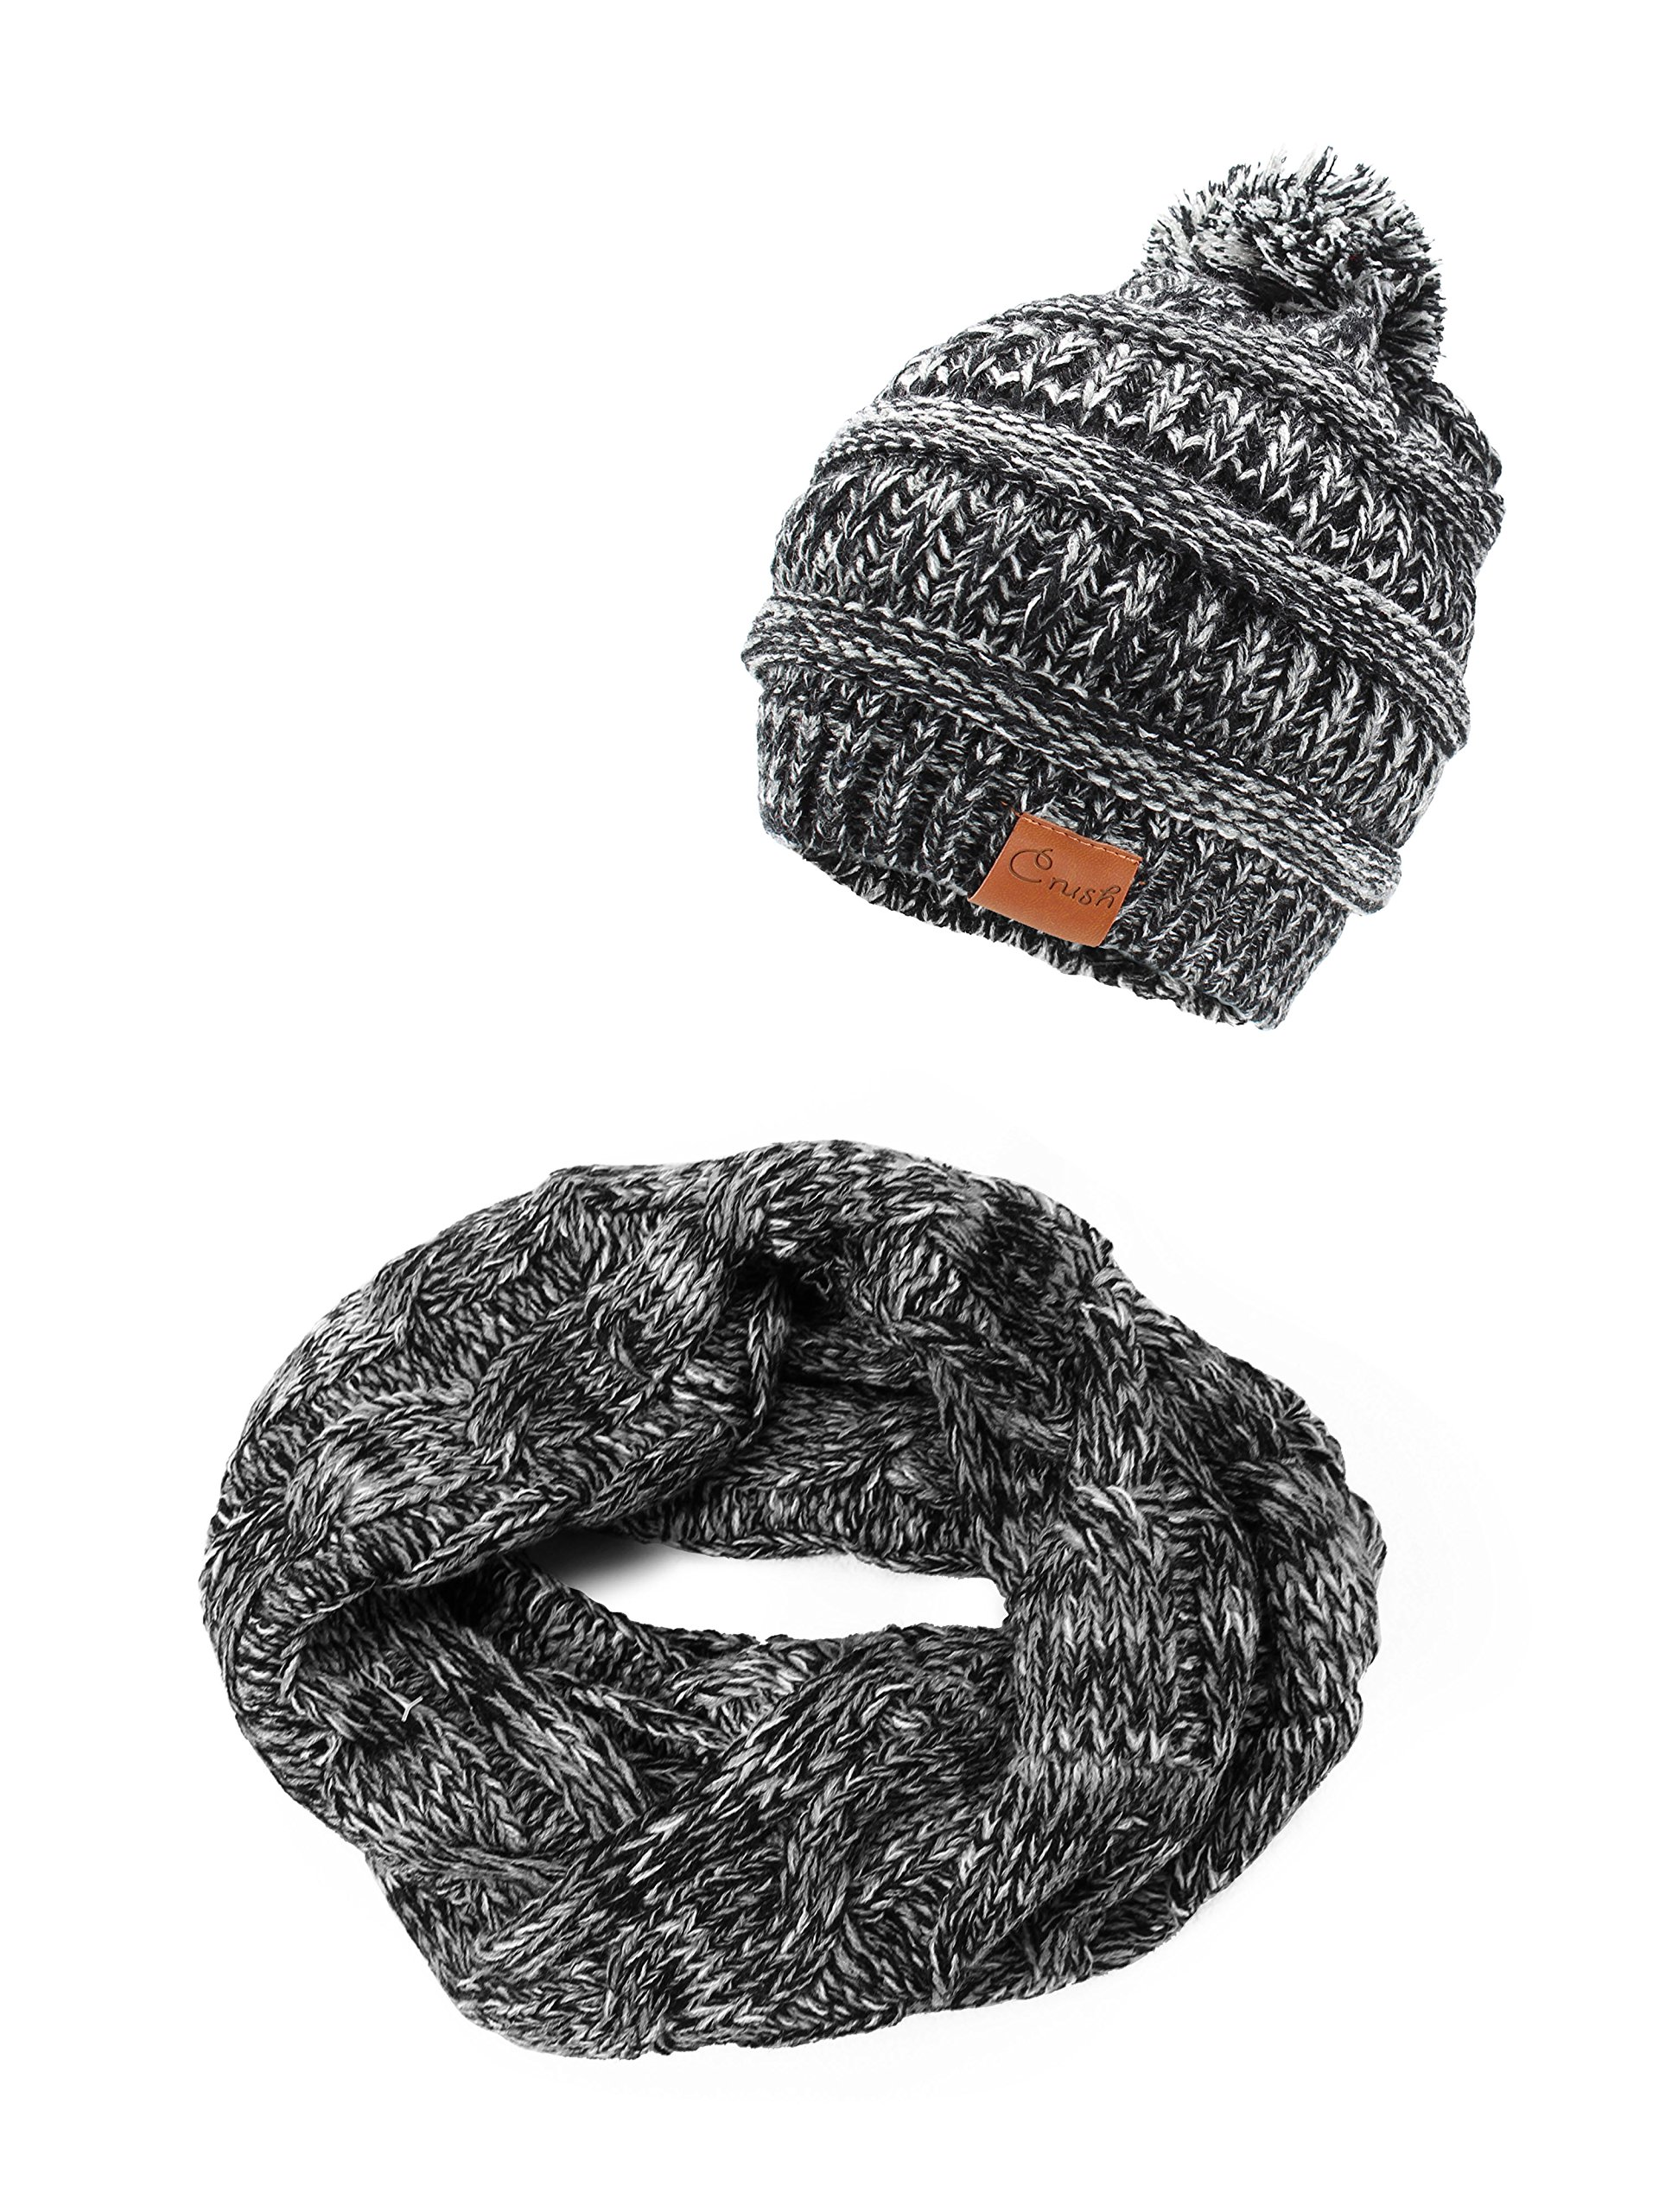 Crush Kids Girls Knit Pompom Beanie Hat and Scarf Set One Size Fits Most Plain Black